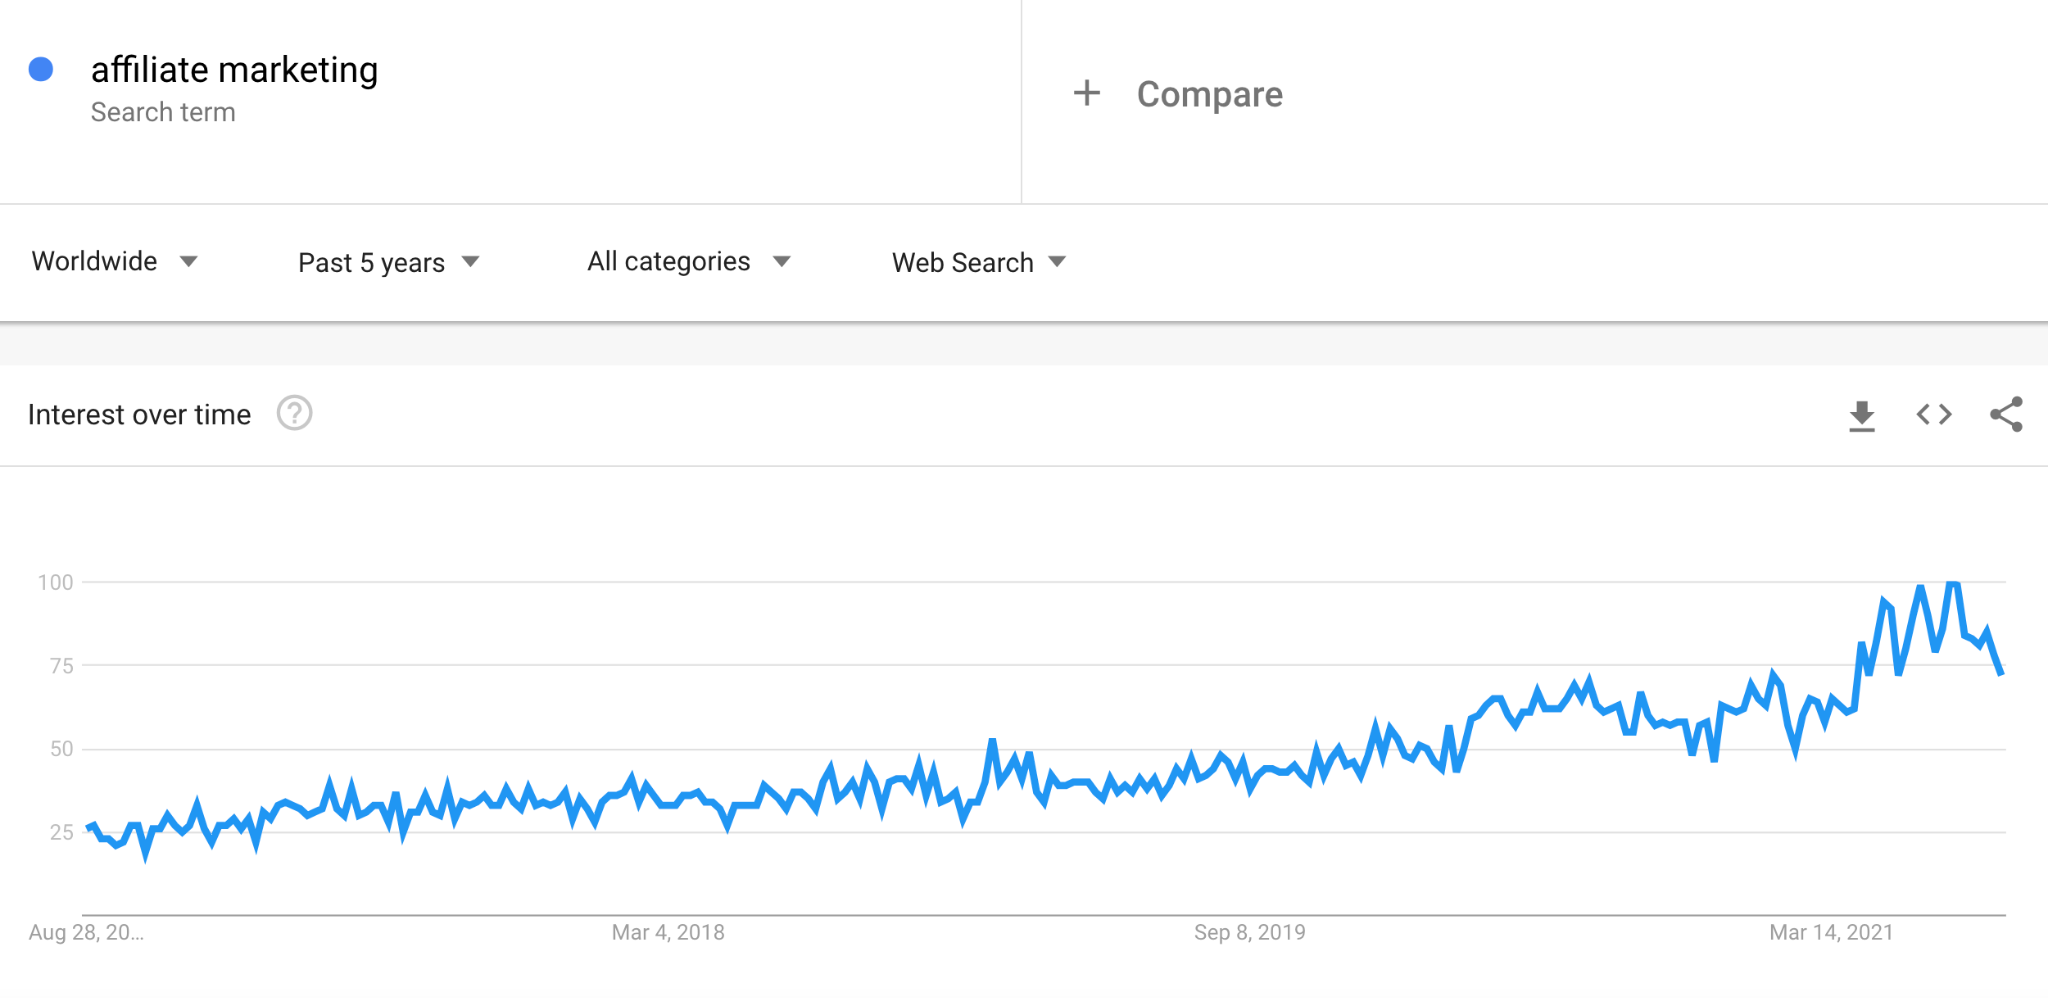 graph about interest in the search term affiliate marketing